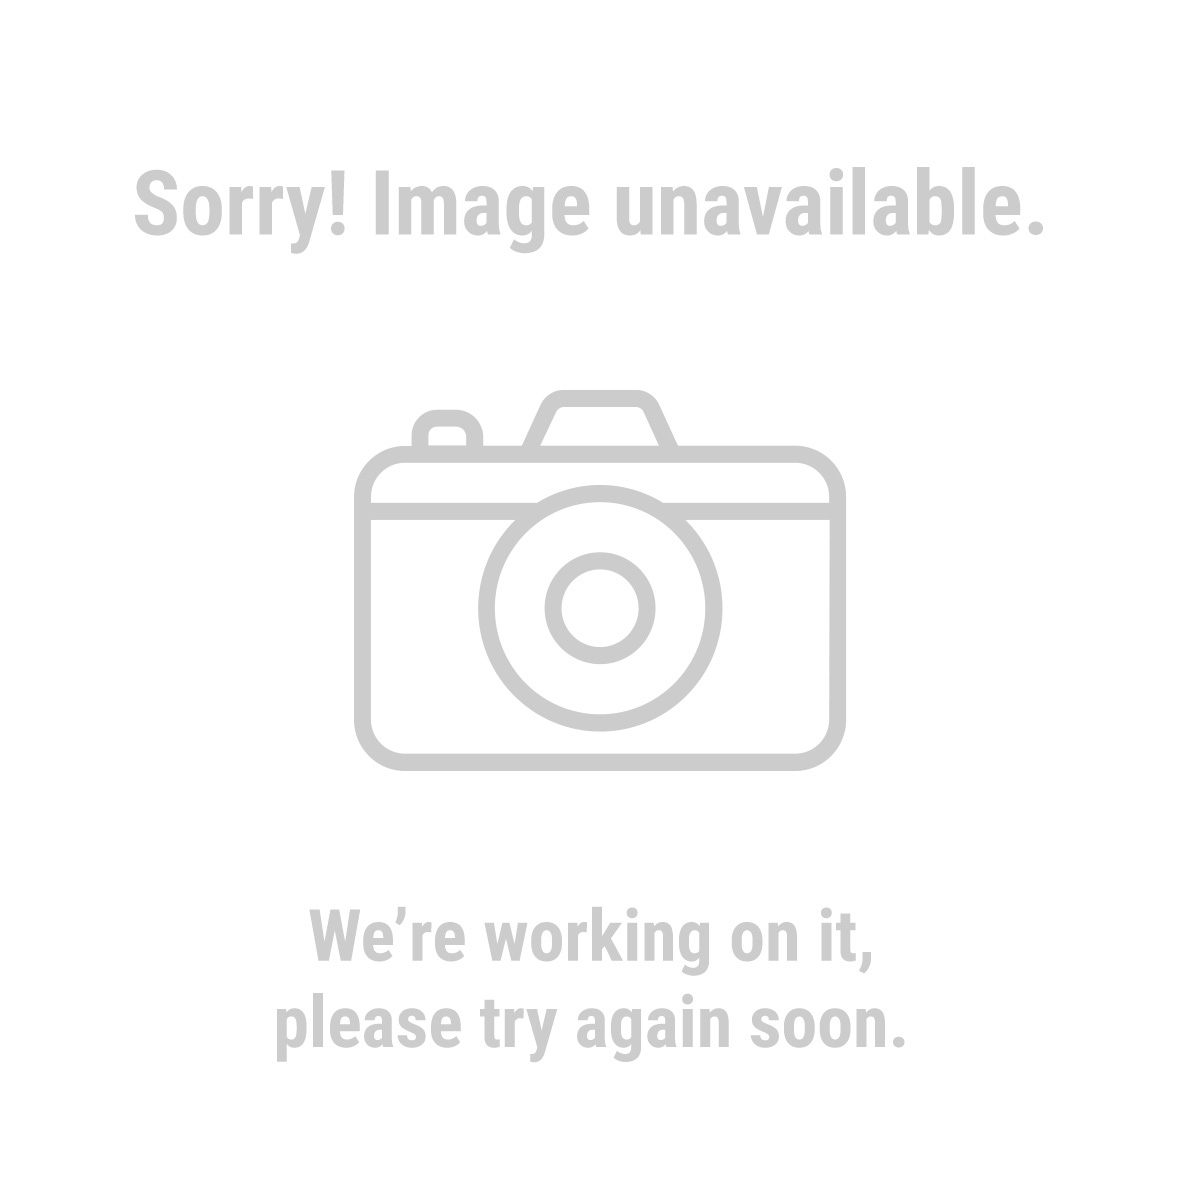 "U.S. General Pro 68784 Roller Cabinet, 44"", 13 Drawer, Gloss Red Industrial Quality"